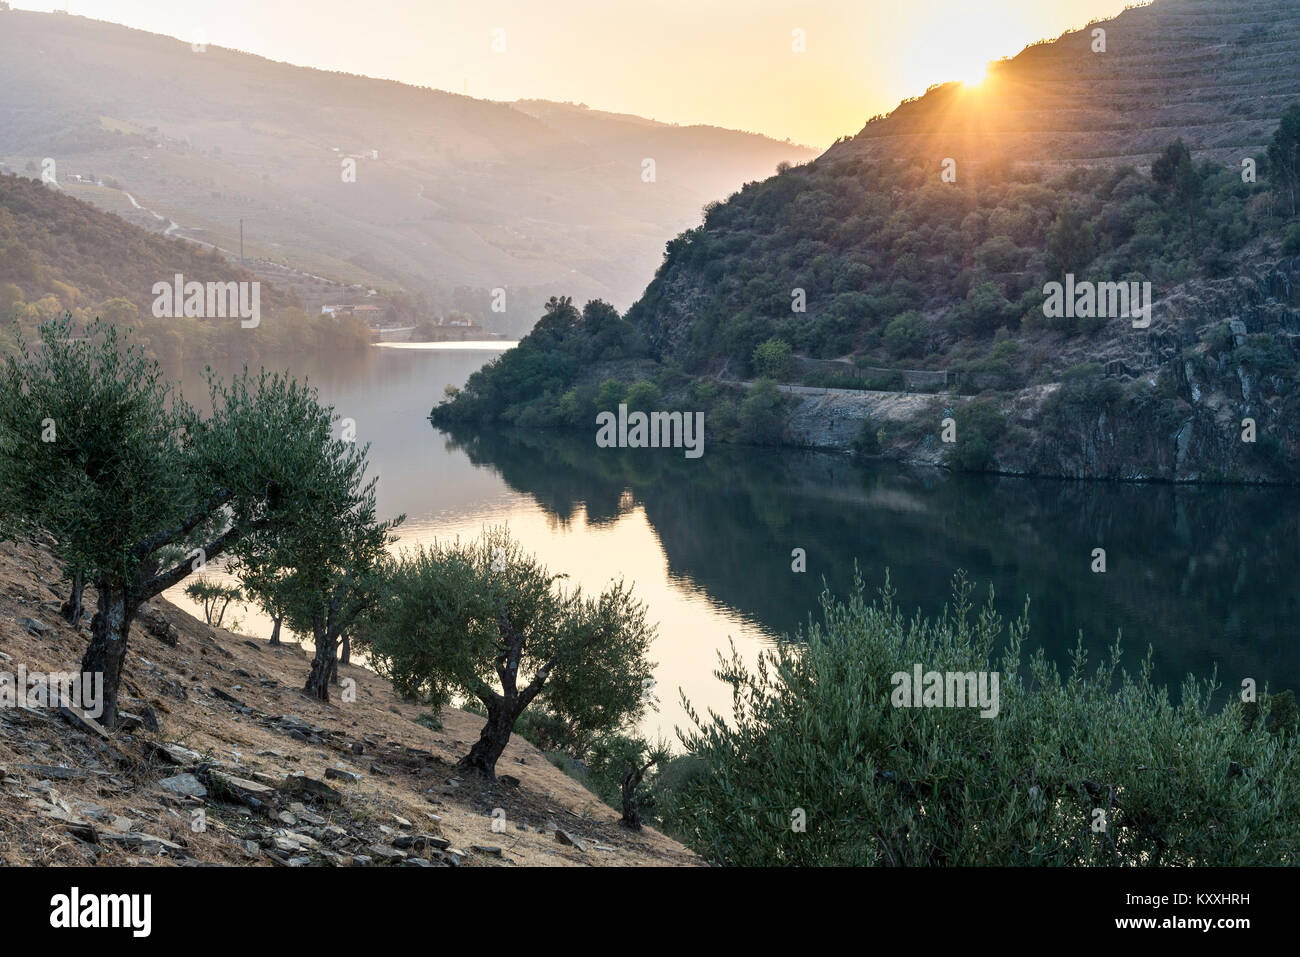 The River Douro at sunset between Folgosa and Pinhao. In the Alto Douro wine region, Northern Portugal - Stock Image